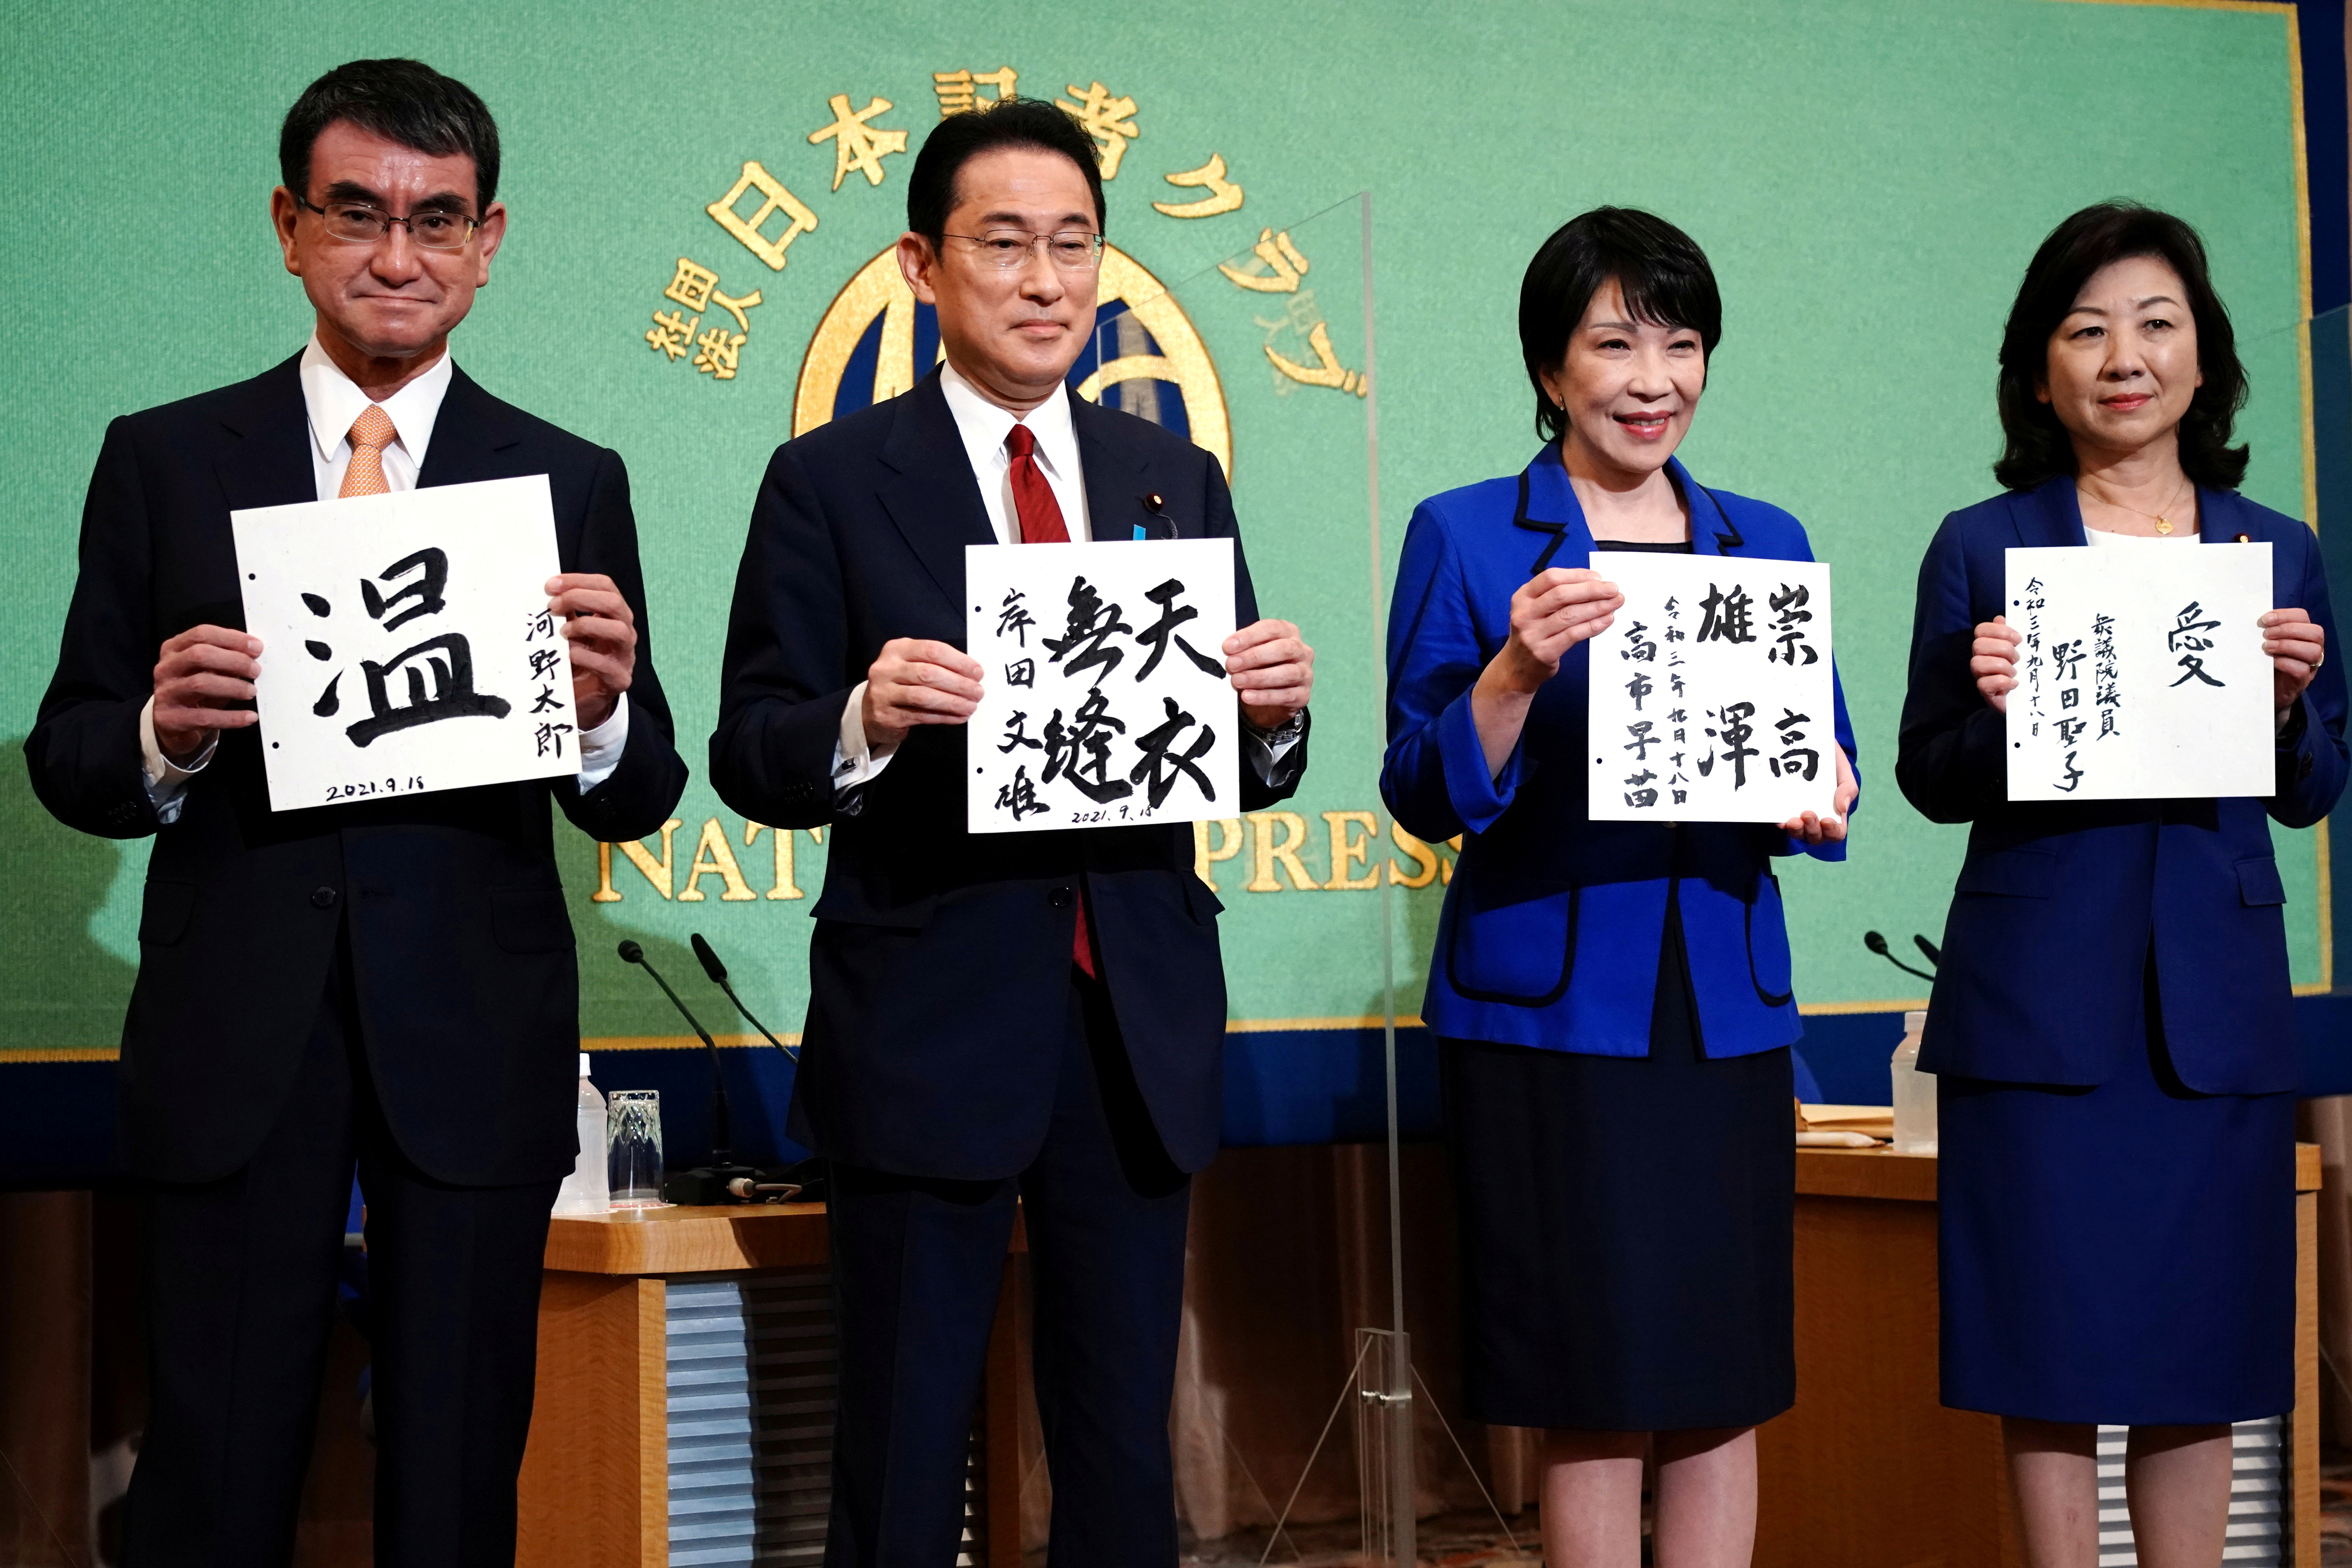 Candidates for the presidential election of the ruling Liberal Democratic Party pose with papers with their sign and words prior to a debate session held by Japan National Press Club September 18, 2021 in Tokyo, Japan. The contenders are (L to R) Taro Kono, the cabinet minister in charge of vaccinations, Fumio Kishida, former foreign minister, Sanae Takaichi, former internal affairs minister, and Seiko Noda, former internal affairs minister. Eugene Hoshiko/Pool via REUTERS